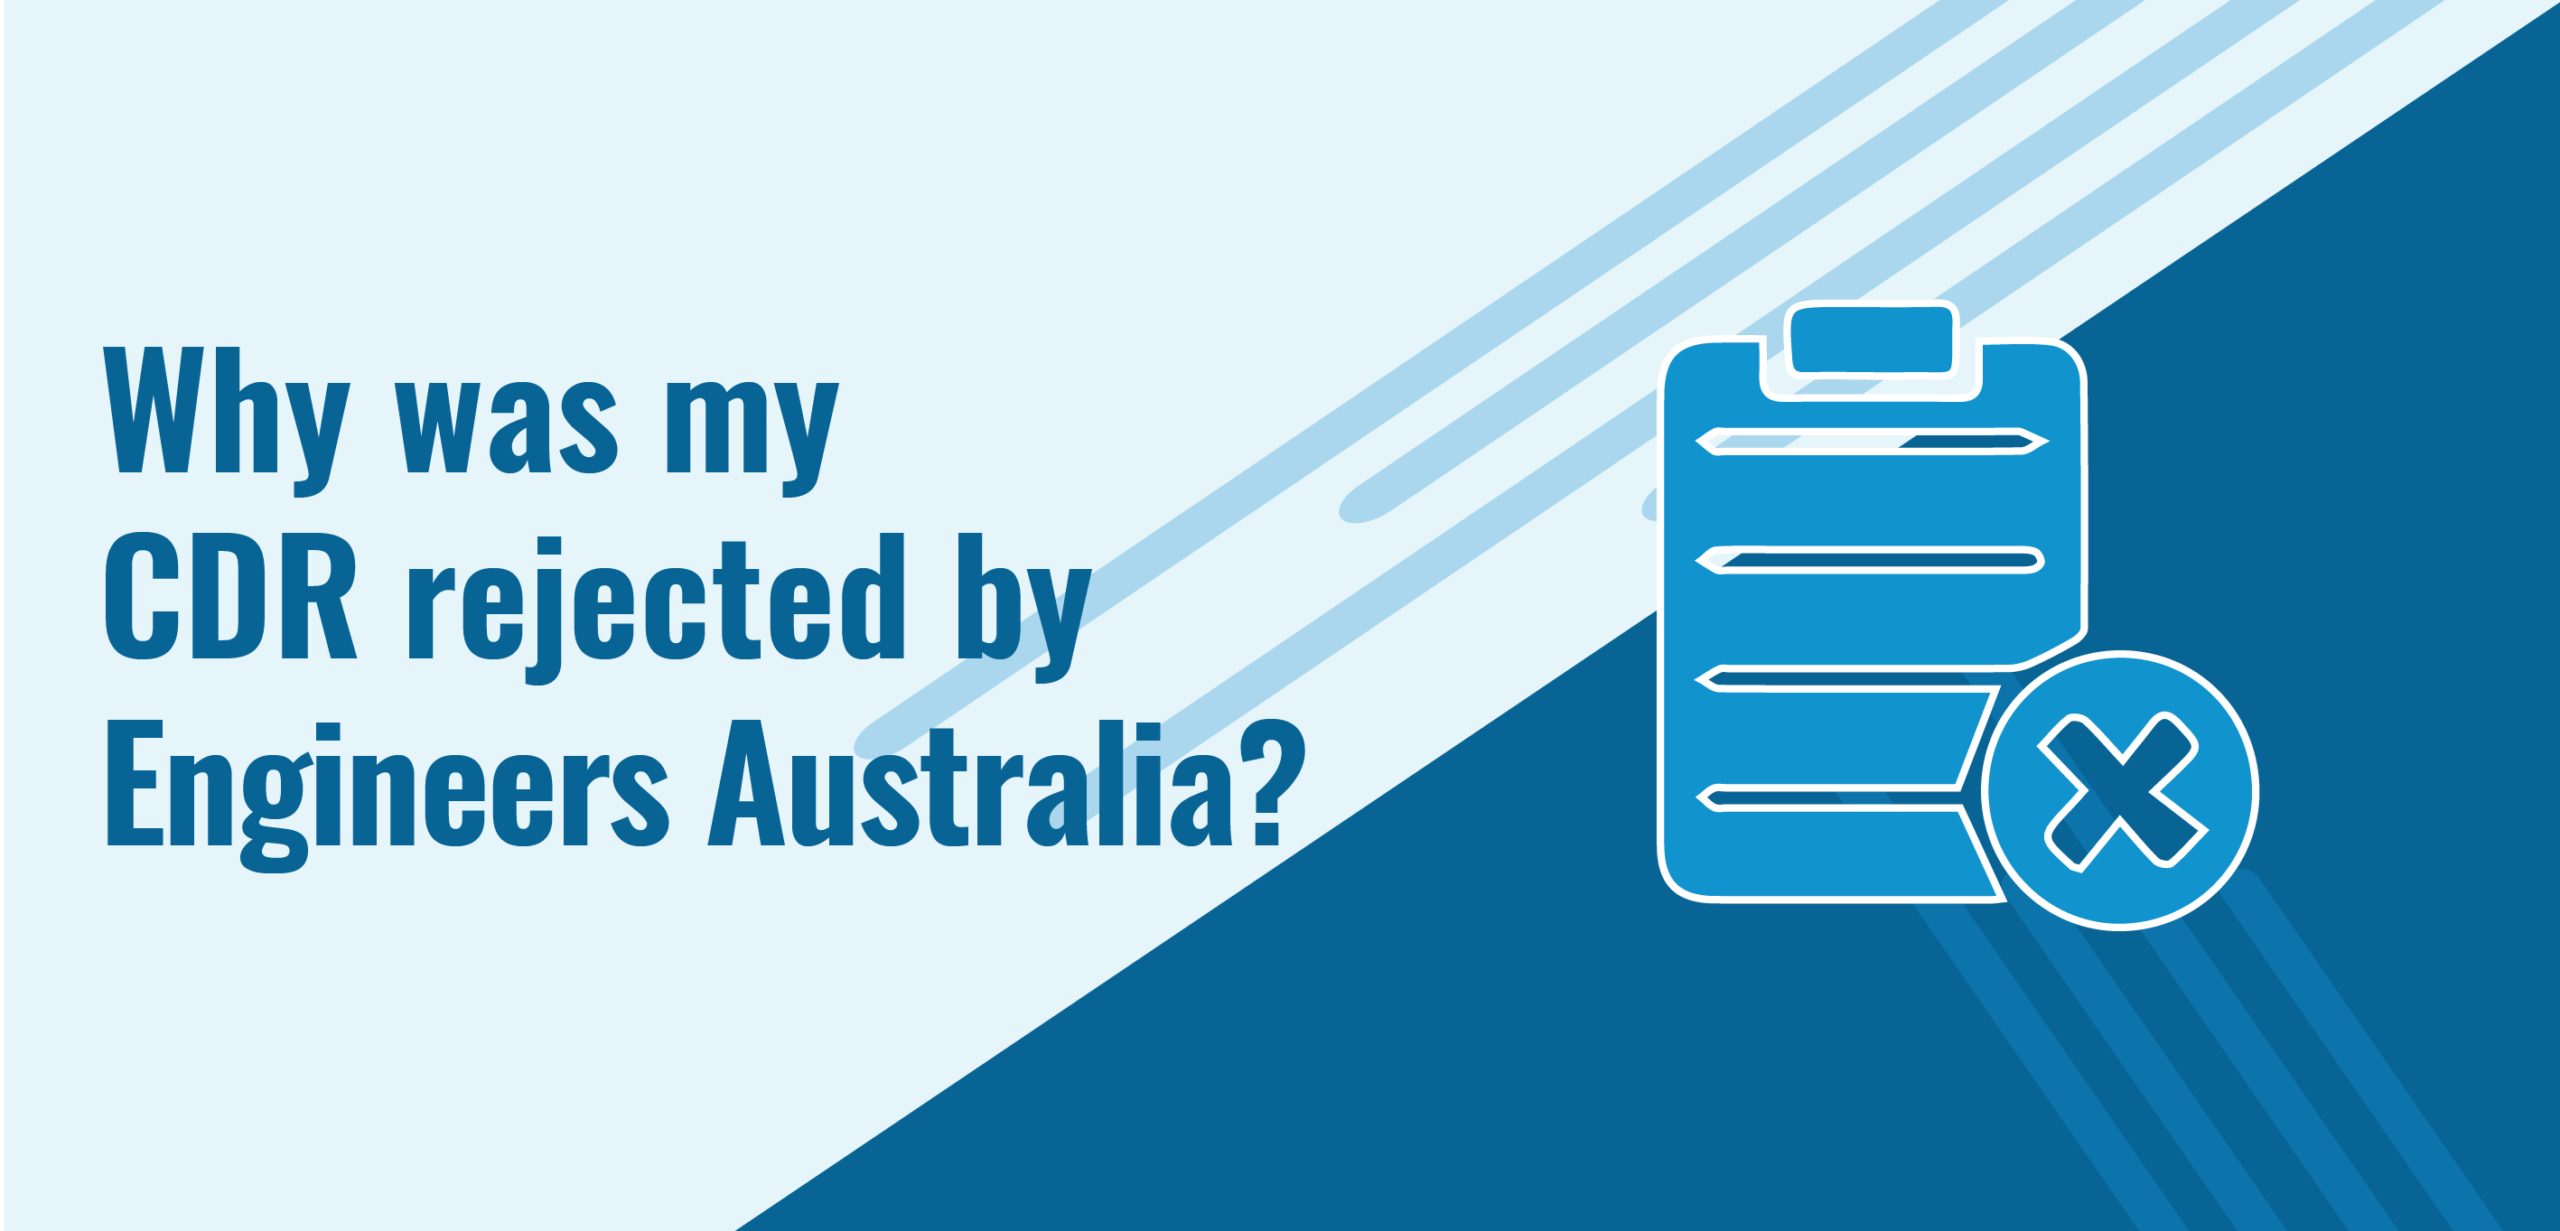 Why was my CDR rejected by Engineers Australia?